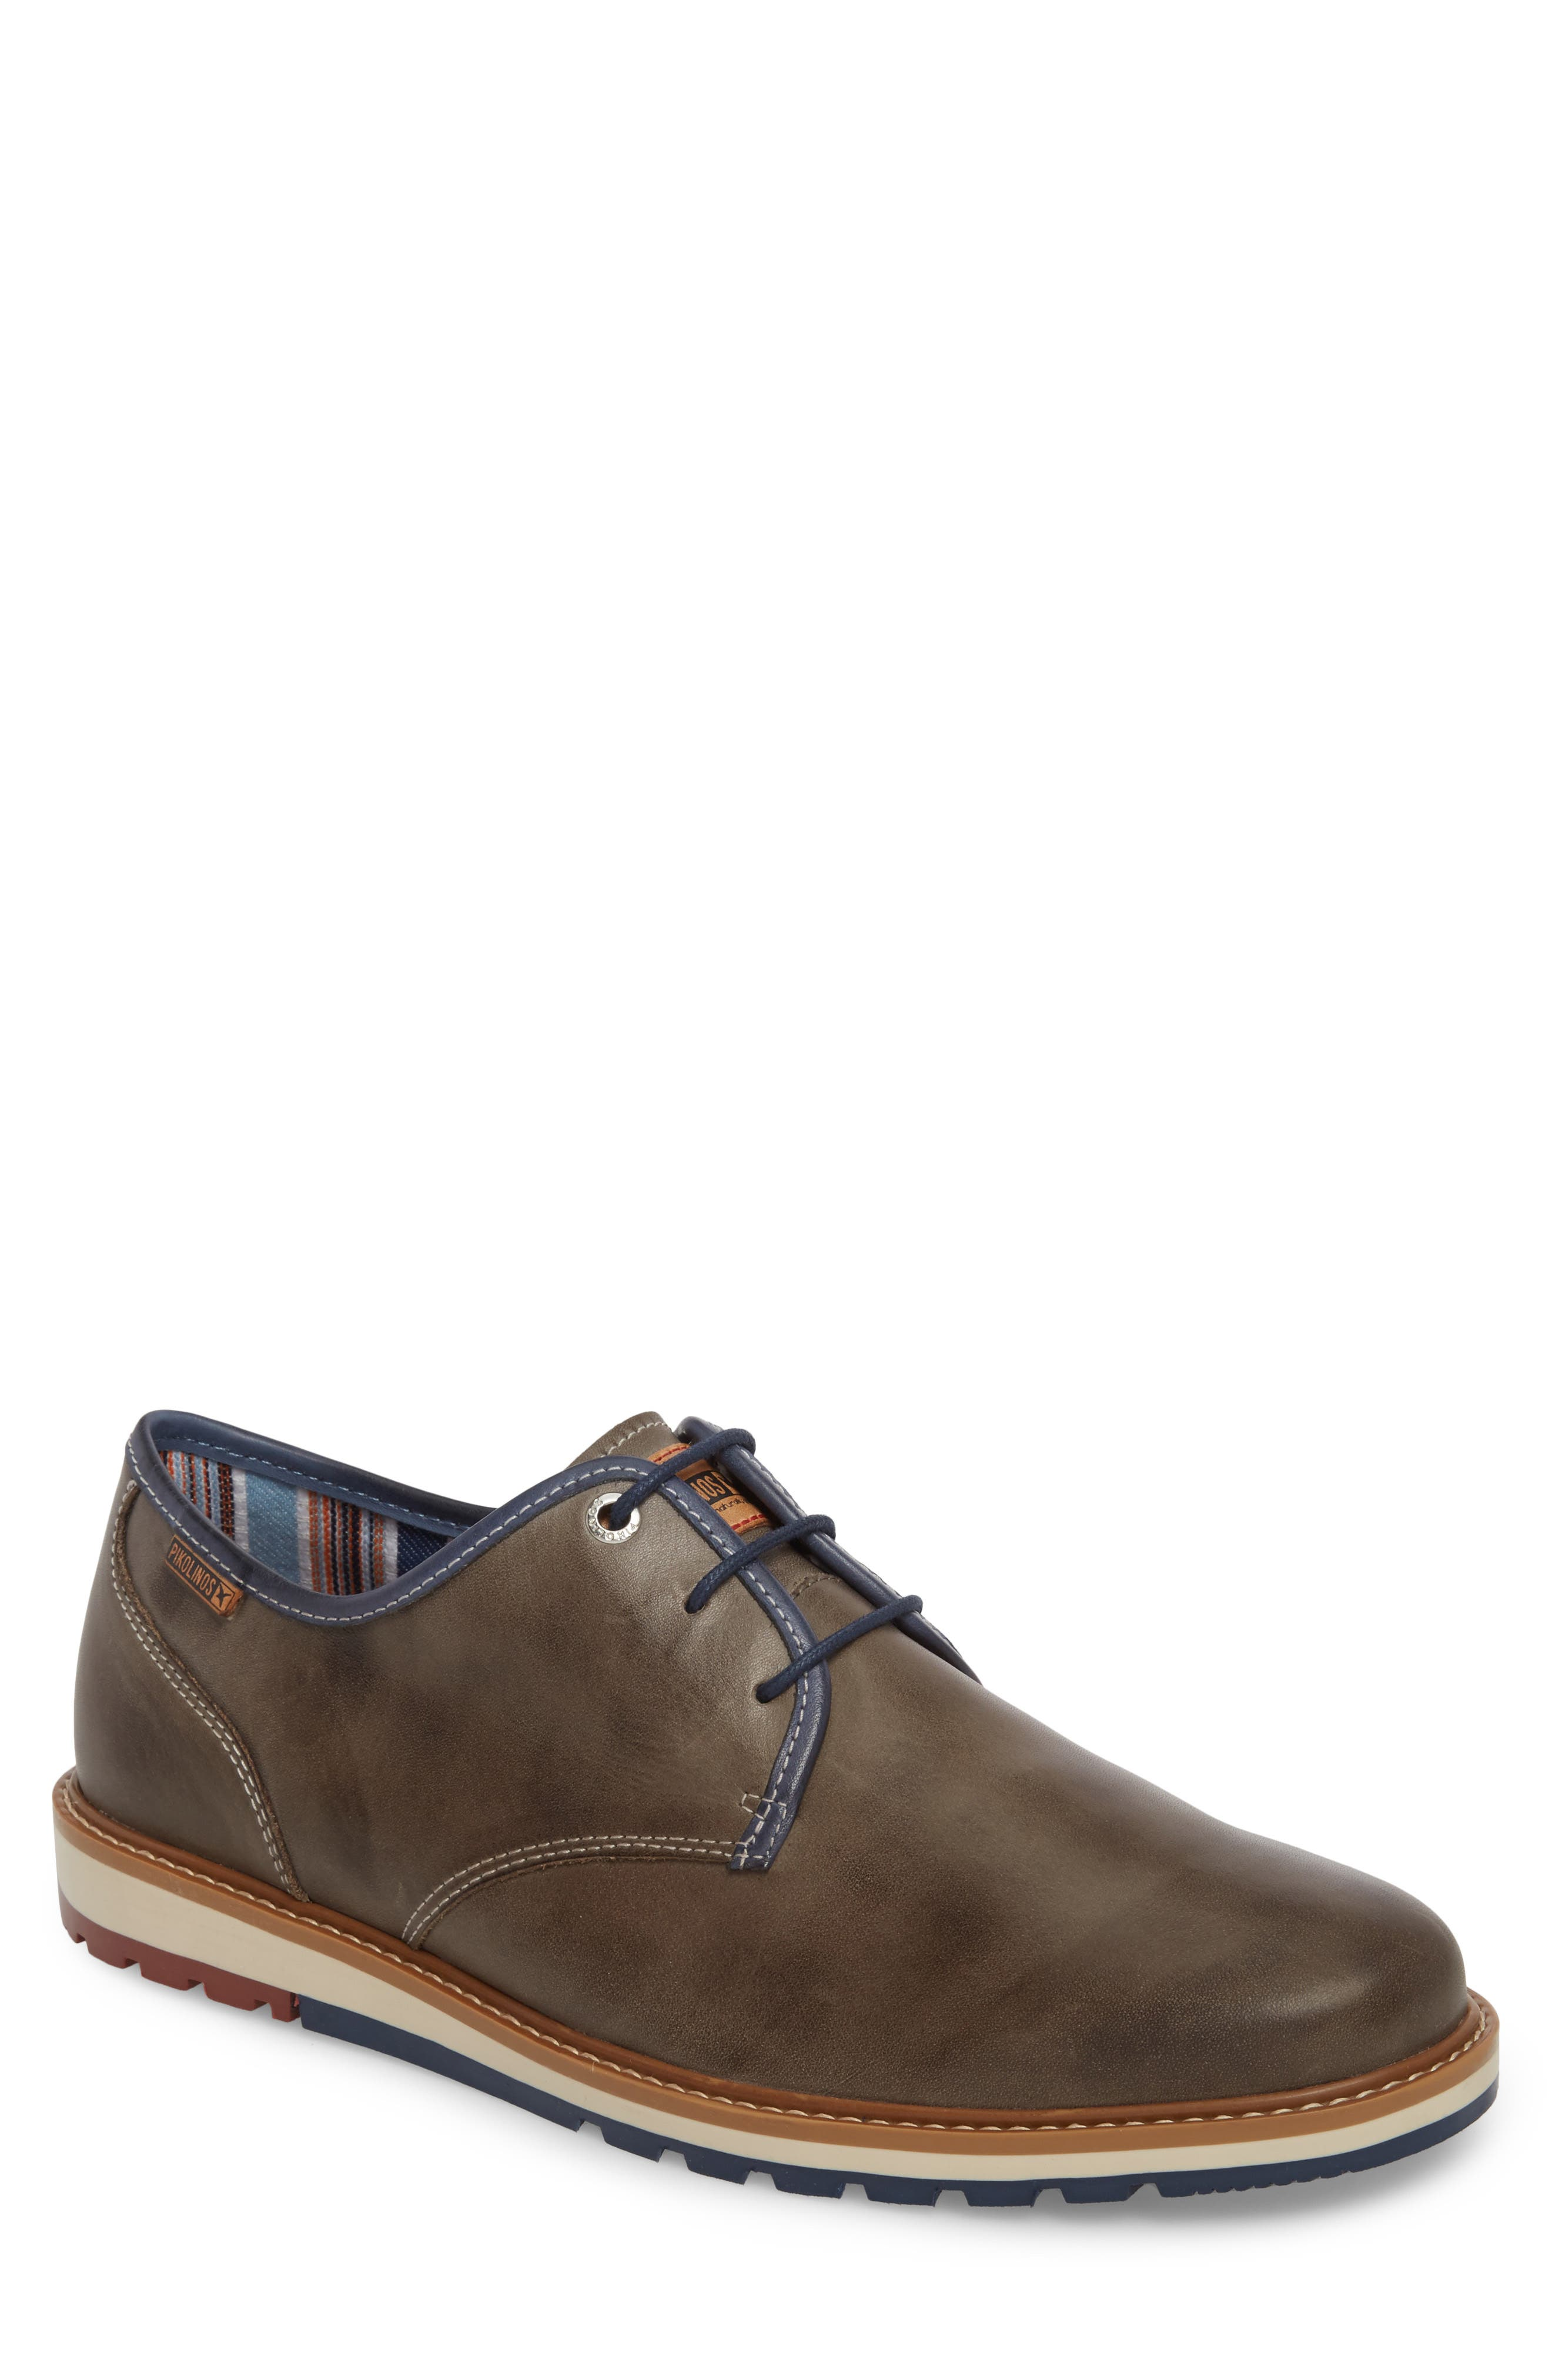 Alternate Image 1 Selected - PIKOLINOS Berna Plain Toe Oxford (Men)